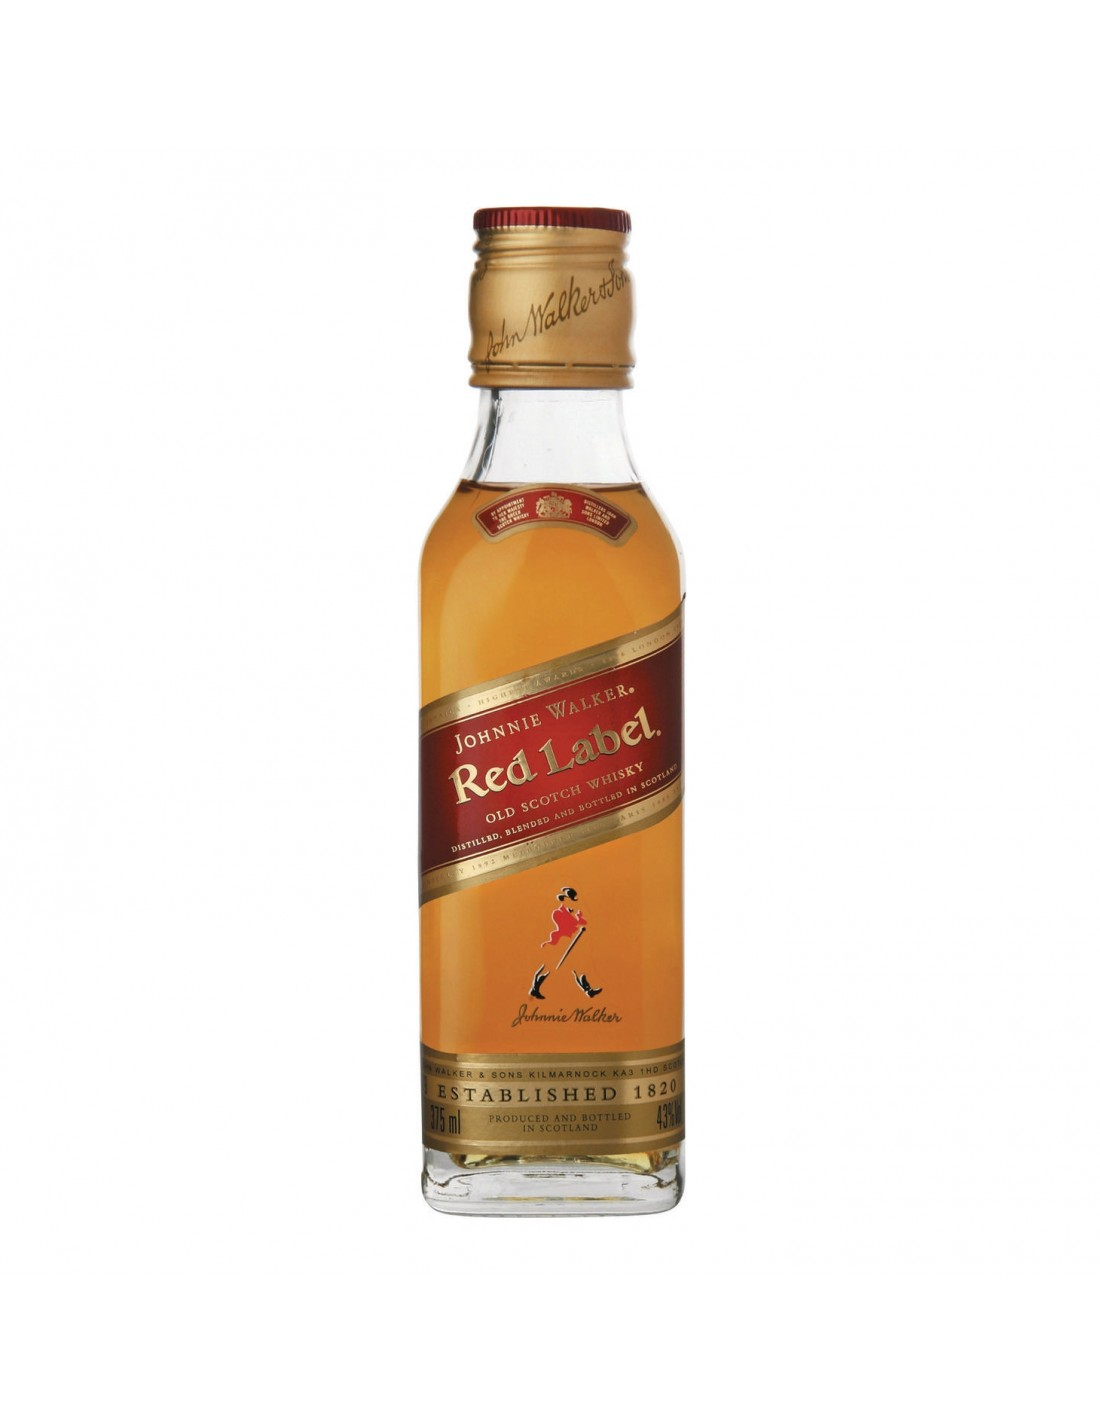 Whisky Johnnie Walker Red Label, 40% alc., 0.05L, Scotia